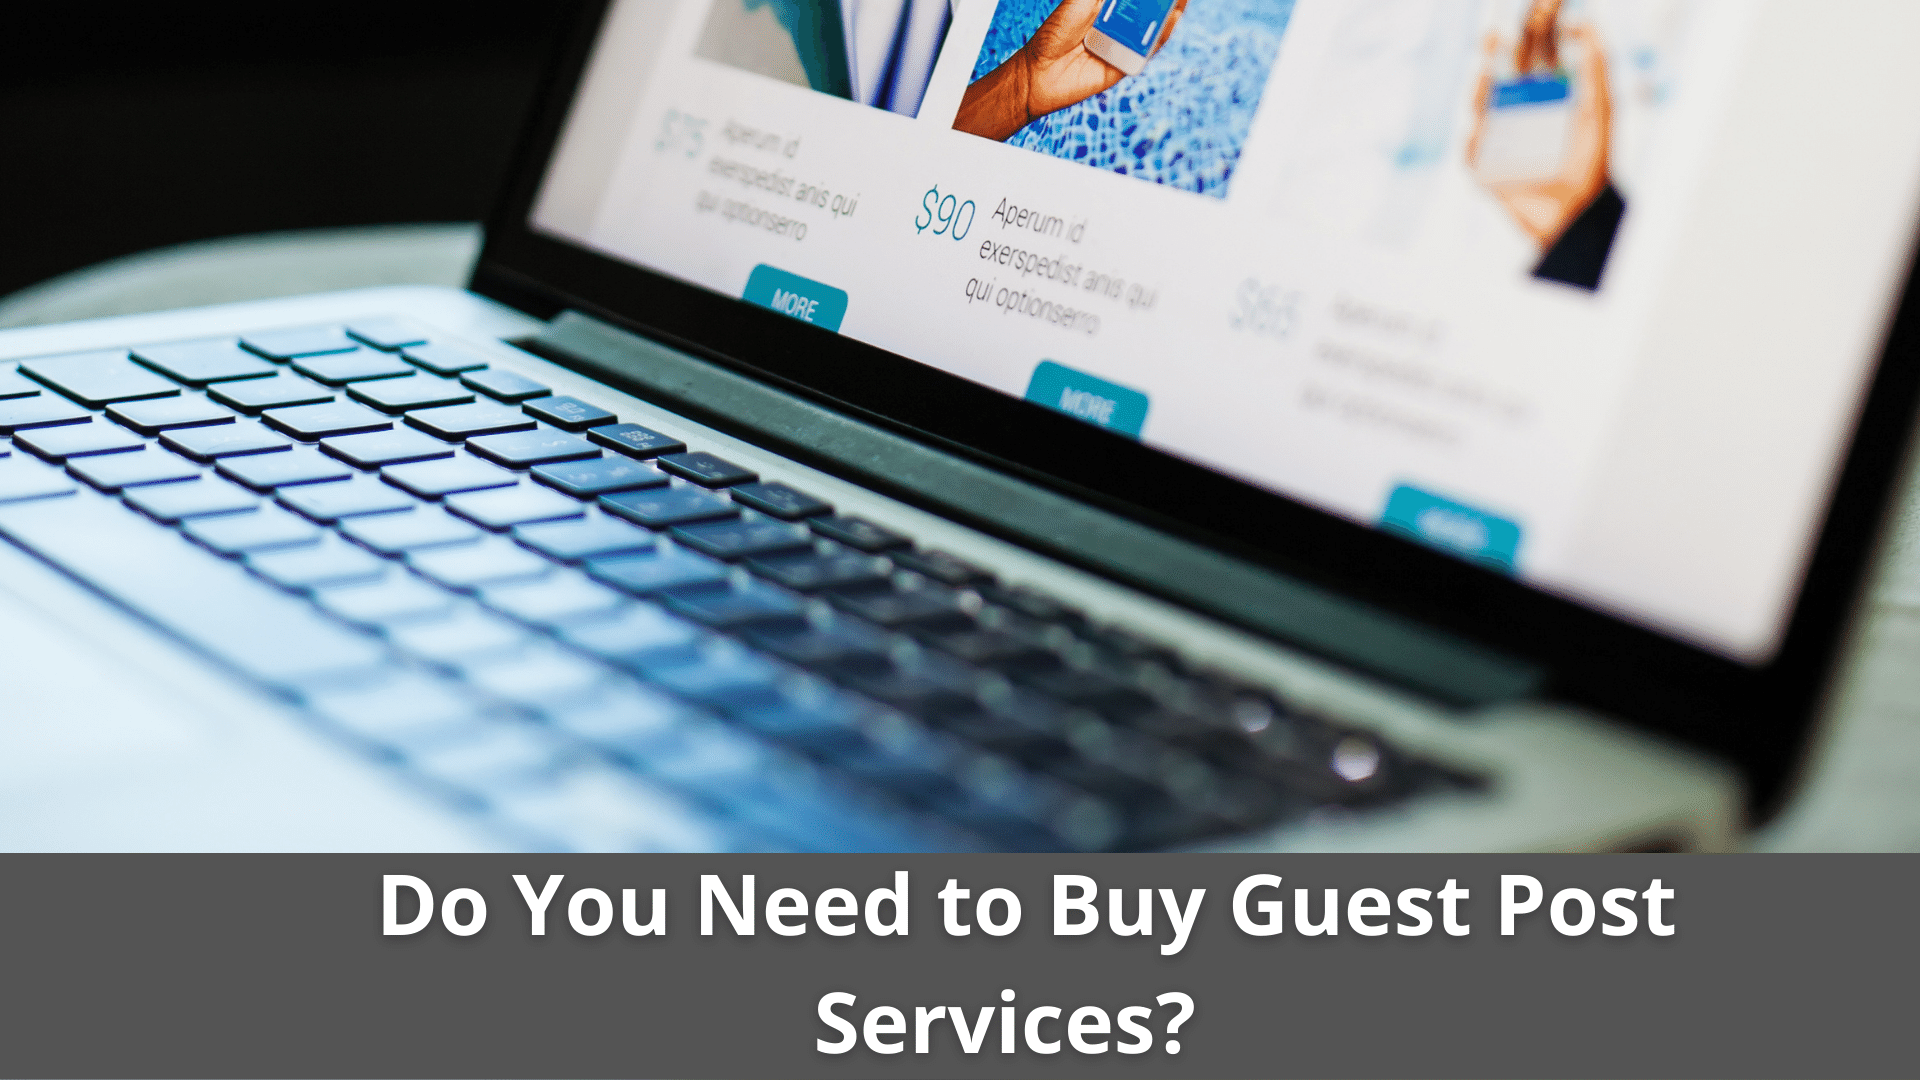 Do You Need to Buy Guest Post Services? why? 6